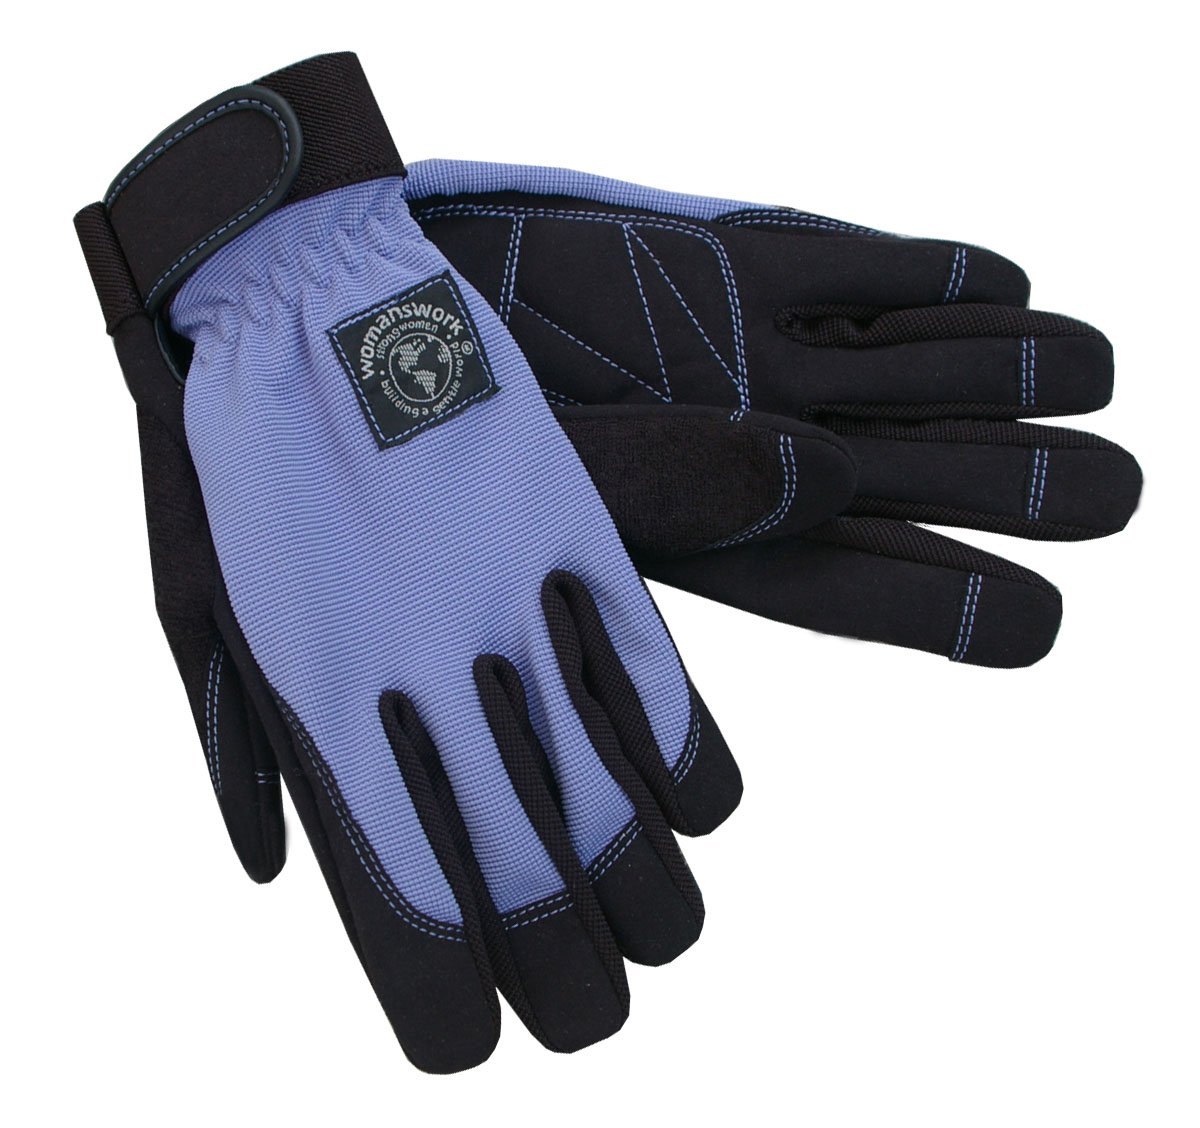 Womanswork Stretch Gardening Glove with Micro Suede Palm, Periwinkle Blue, Medium